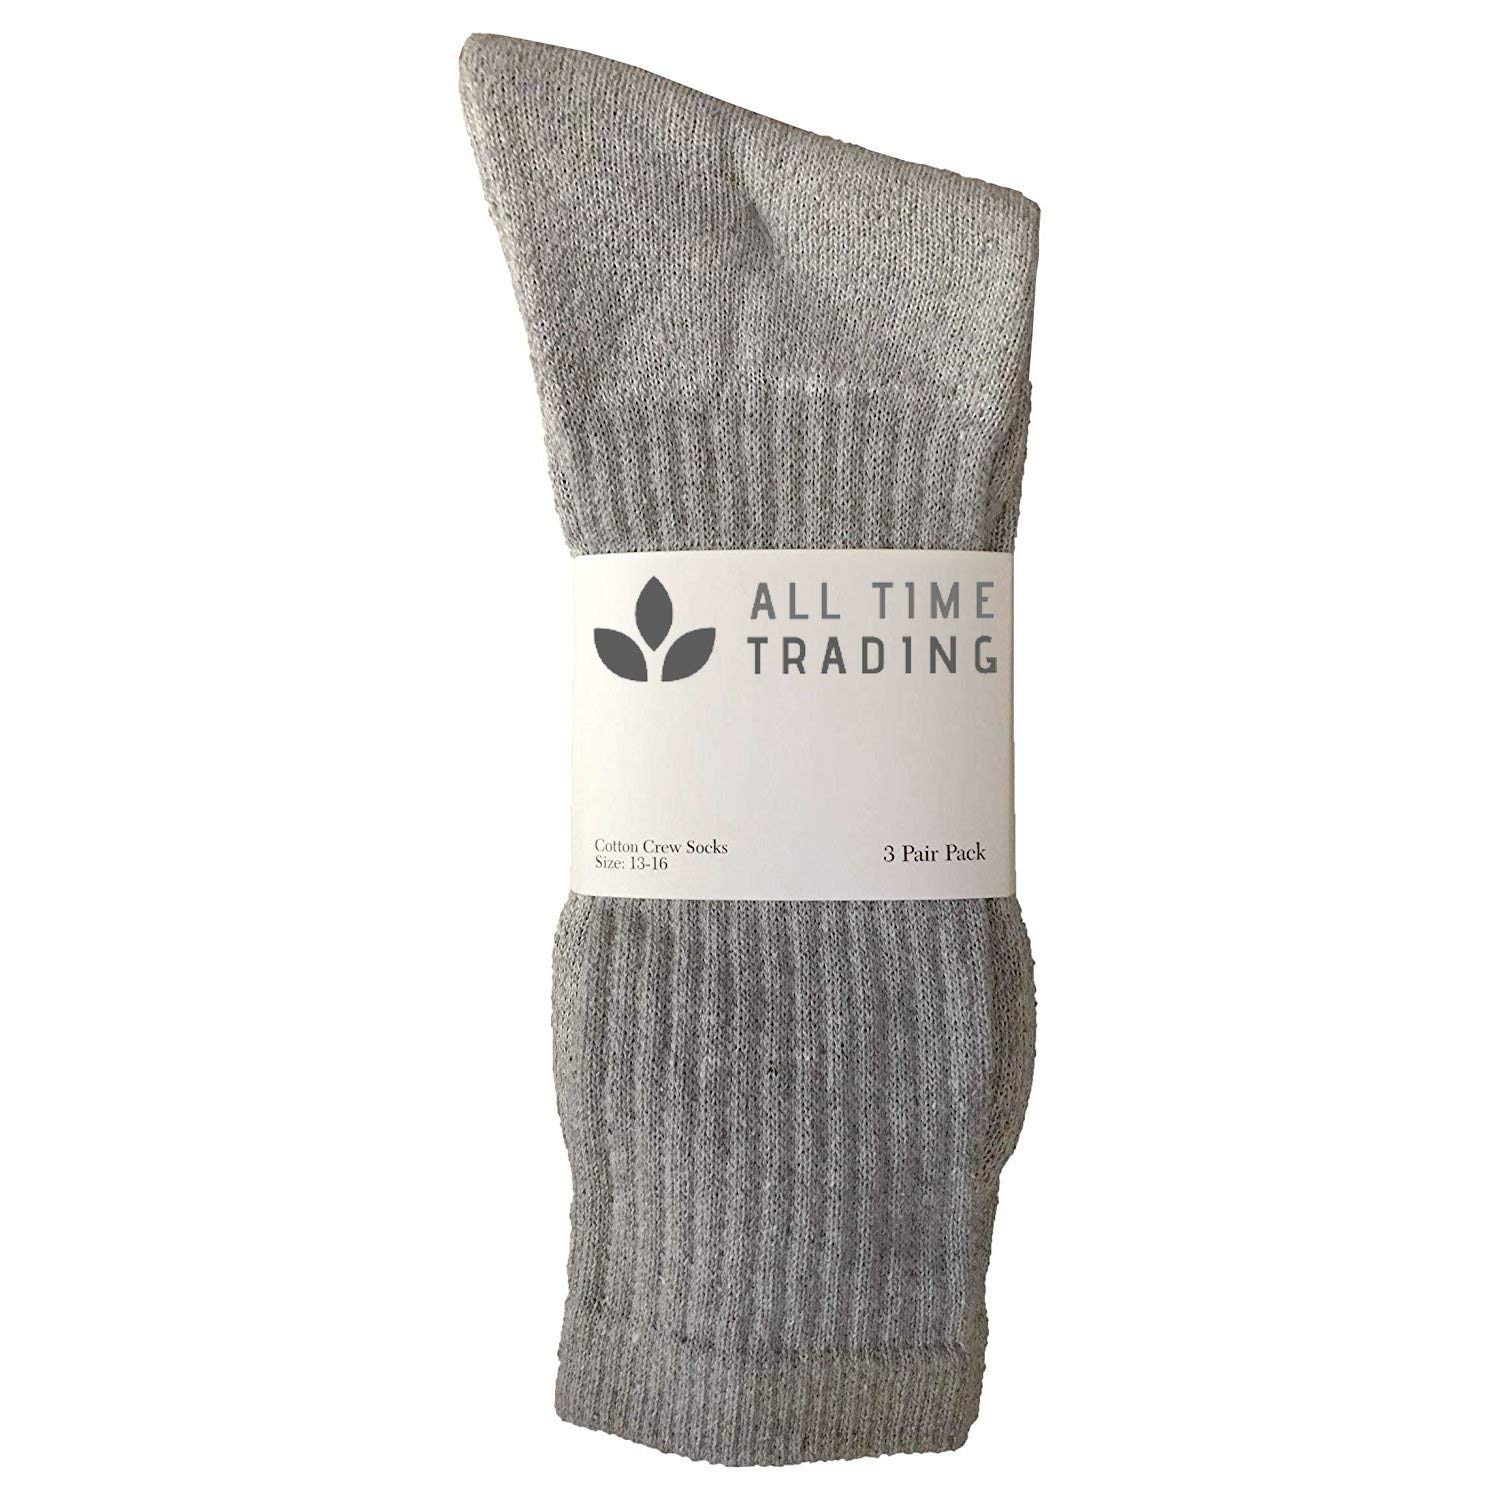 Men's King Size Cotton Crew Sock Plus Size Athletic Socks Men 13-16 Gray 120 pc by All Time Trading (Image #2)